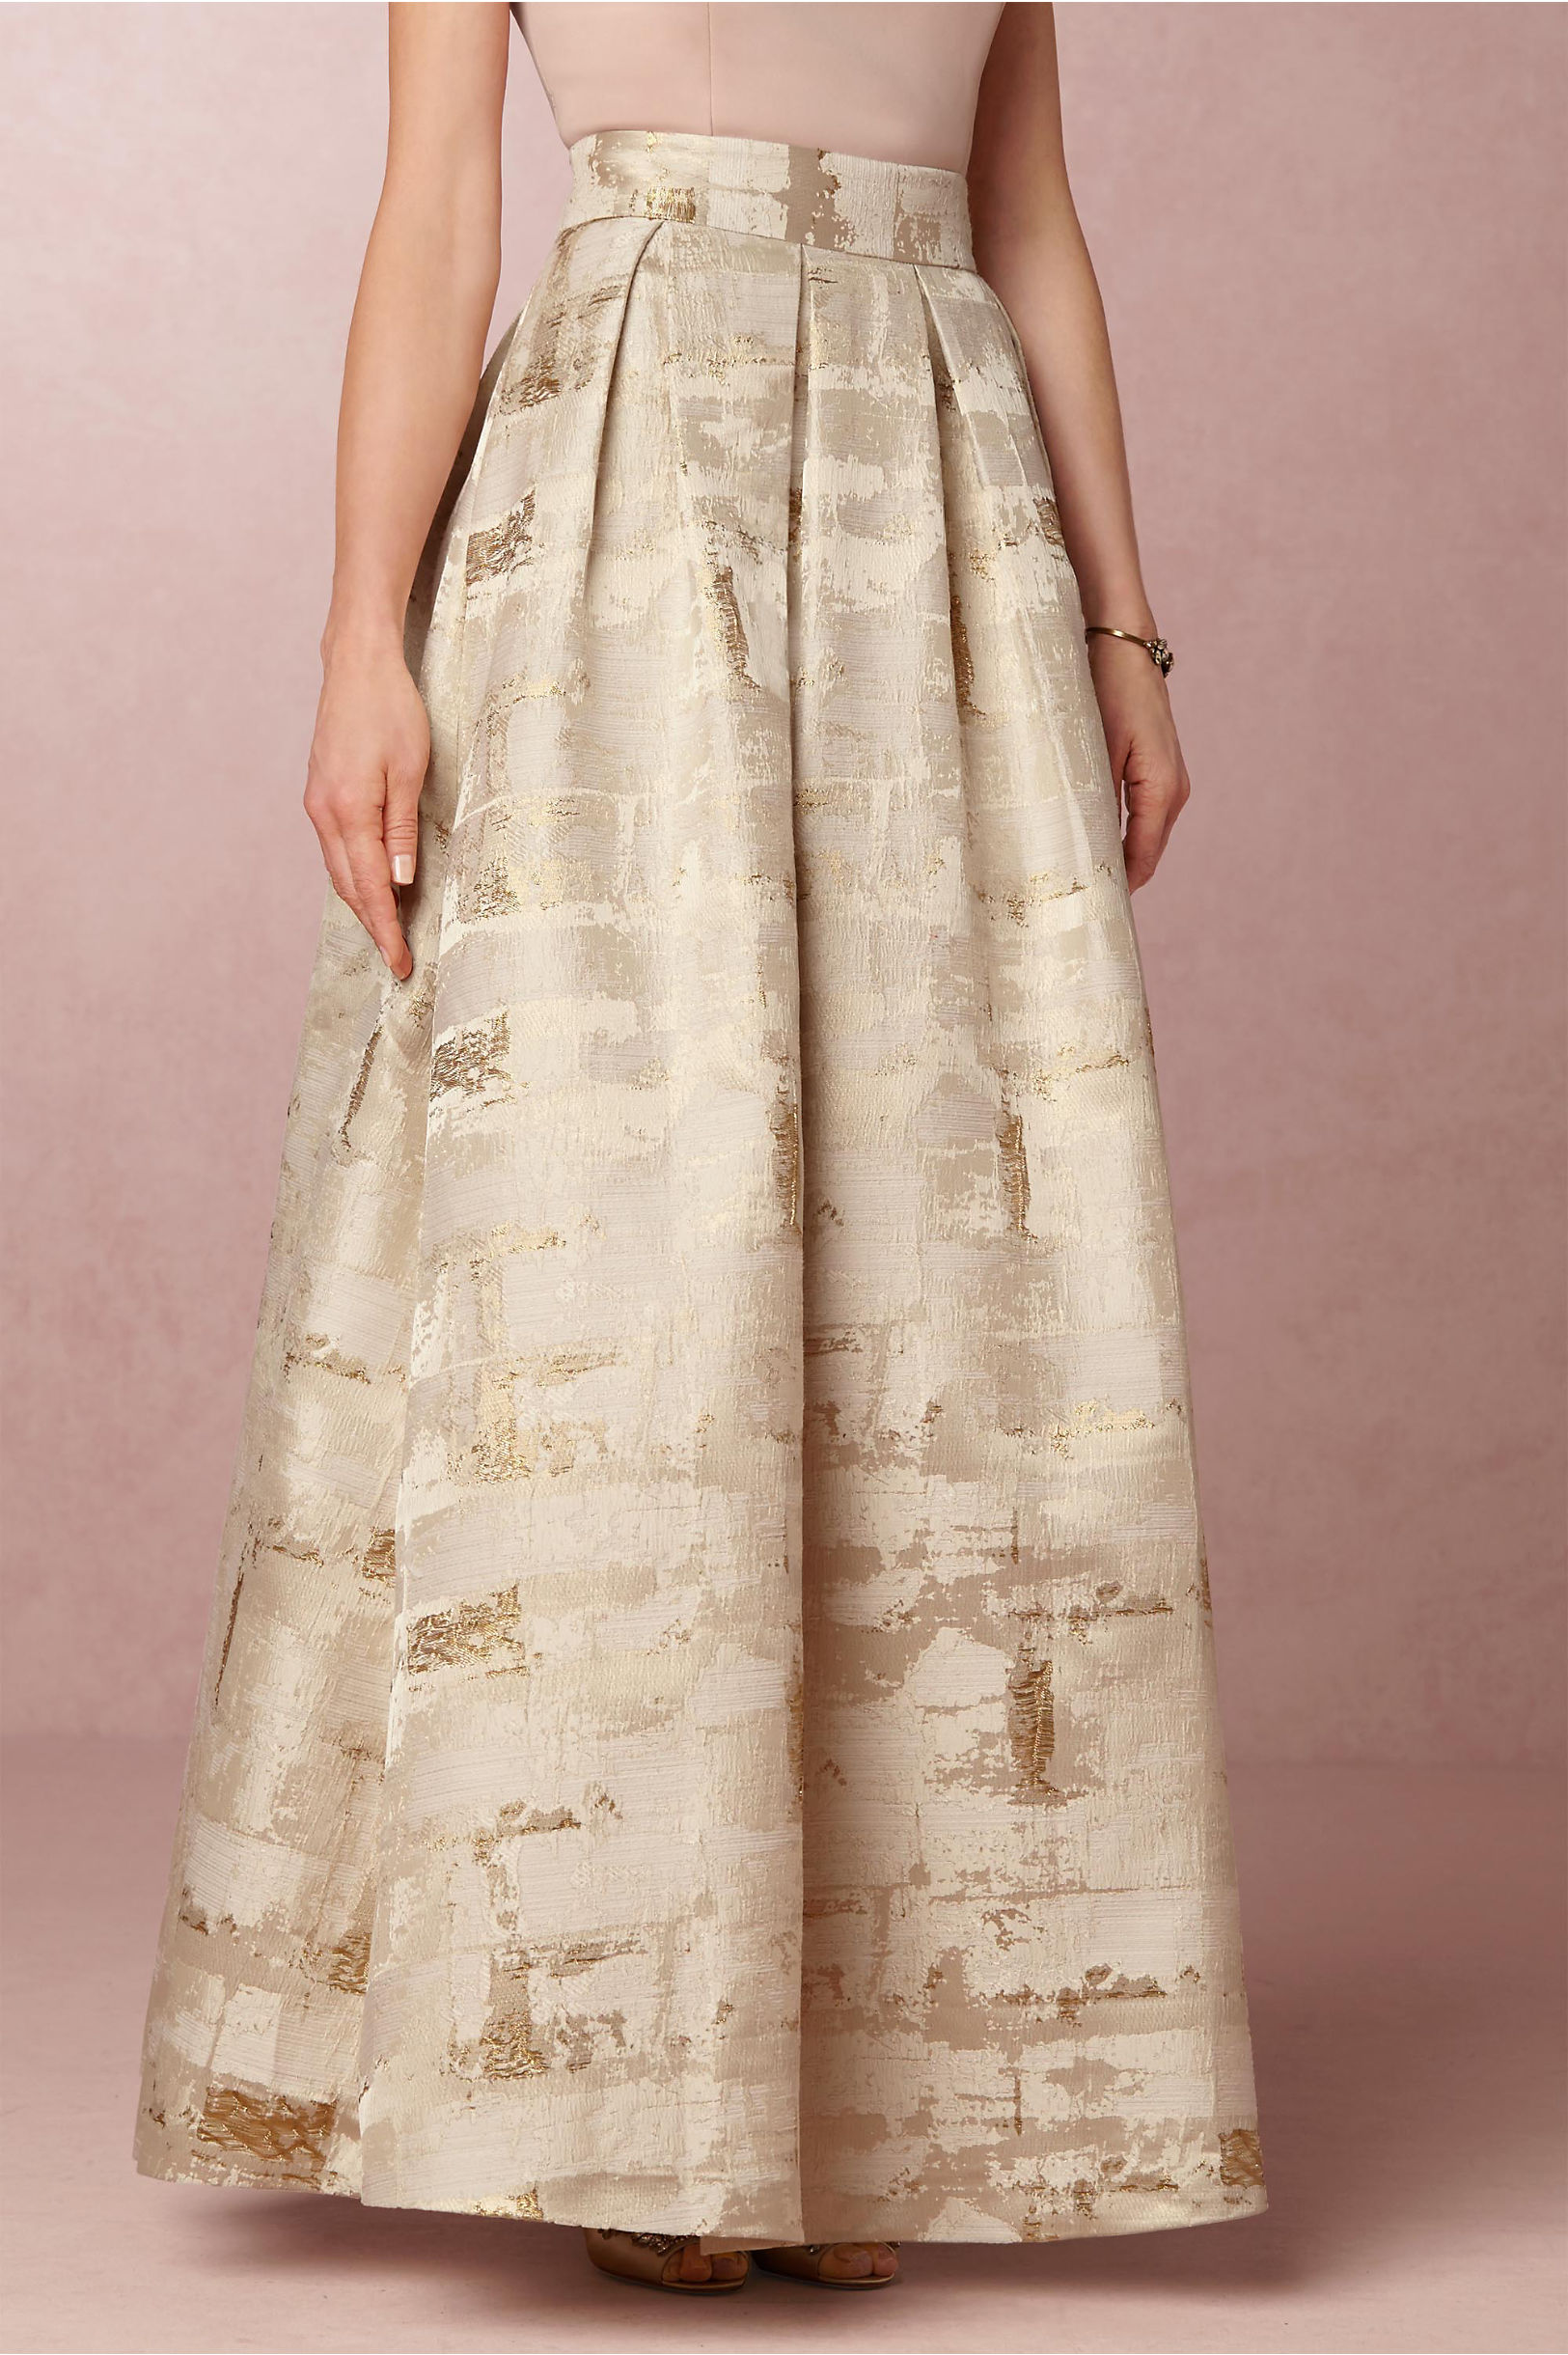 Sophie Skirt in Occasion Dresses | BHLDN